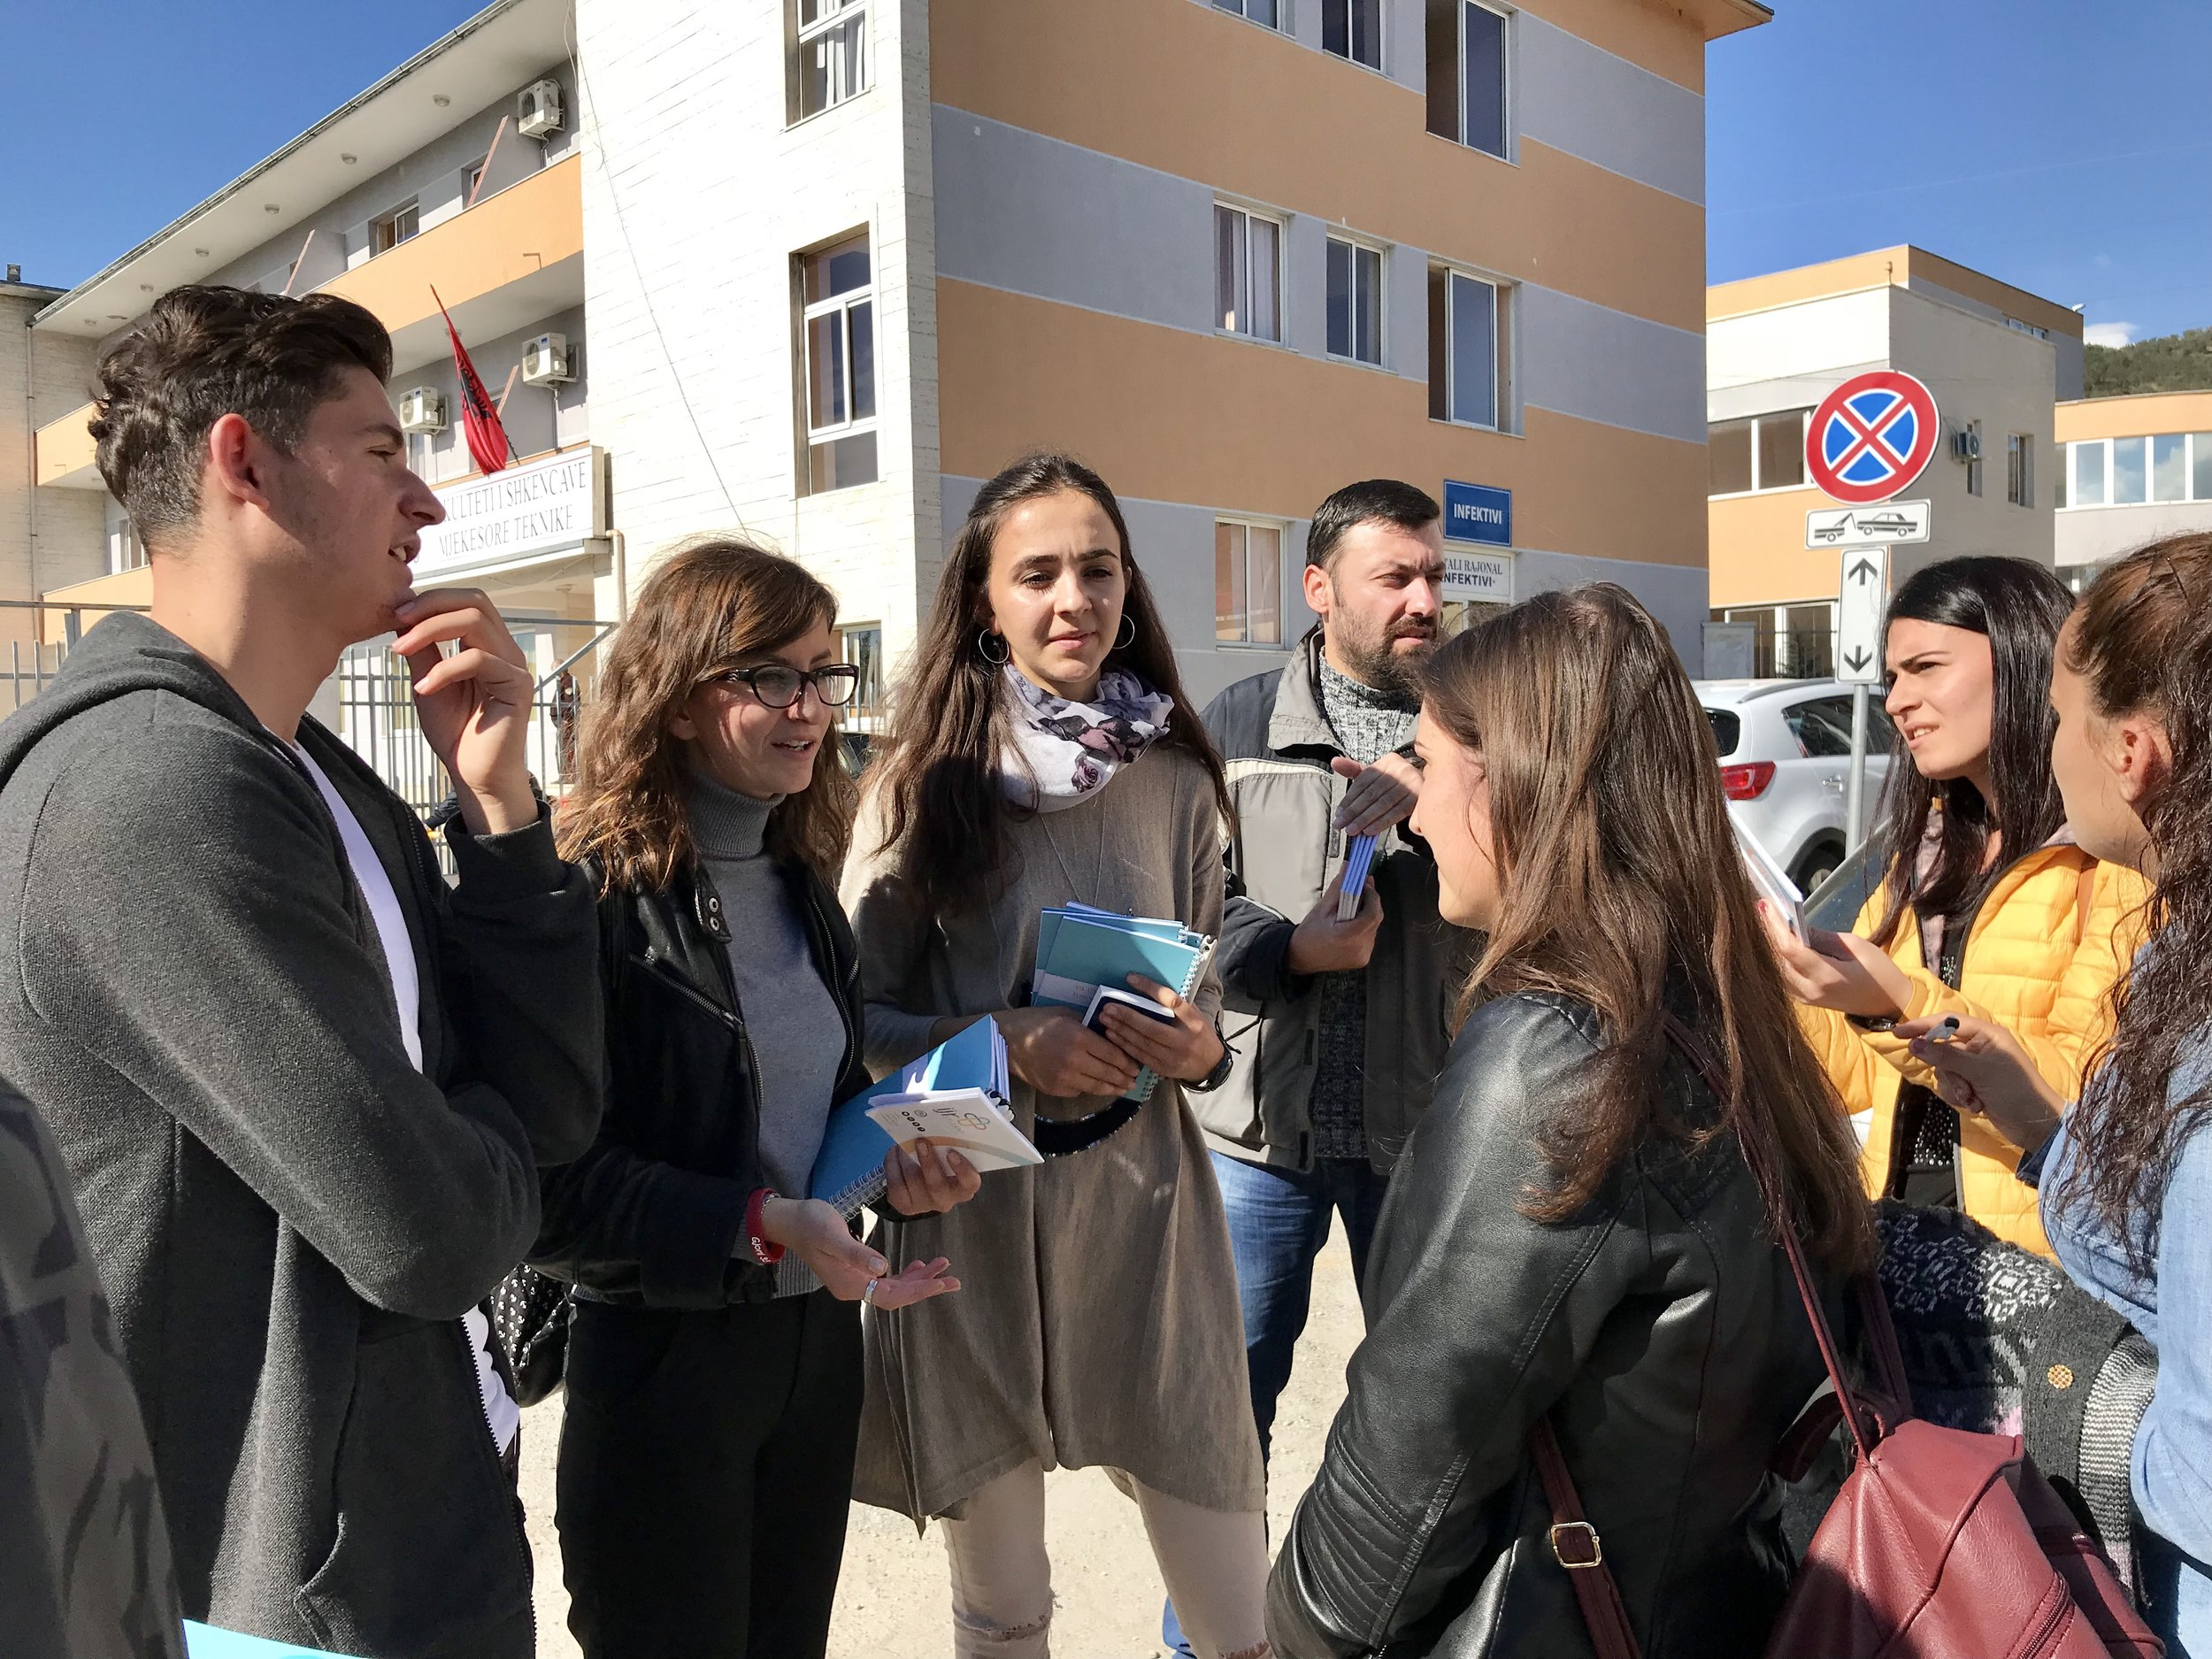 Talking with students outside the university entrance